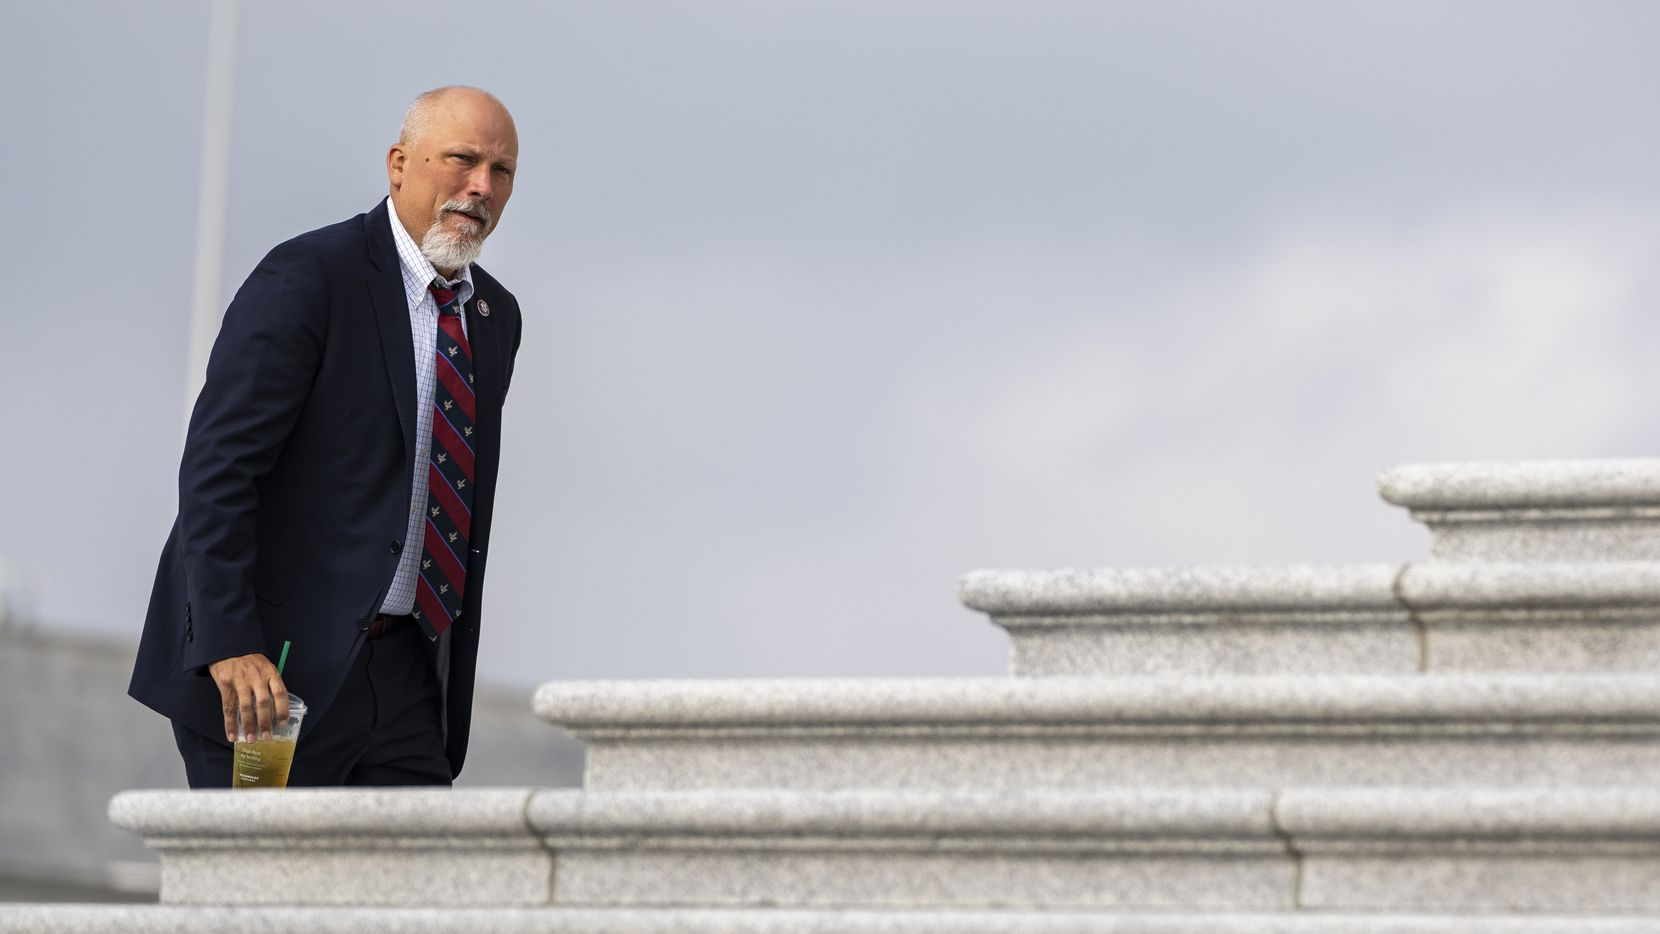 WASHINGTON, DC - JULY 29: Rep. Chip Roy (R-TX) walks up the steps of the U.S. Capitol before a news conference with House Republicans on July 29, 2021 in Washington, DC. McCarthy and Republicans criticized the Biden administration on a wide array of issues, including the CDC's new guidance on indoor masking due to the Delta variant of the coronavirus. (Photo by Drew Angerer/Getty Images)